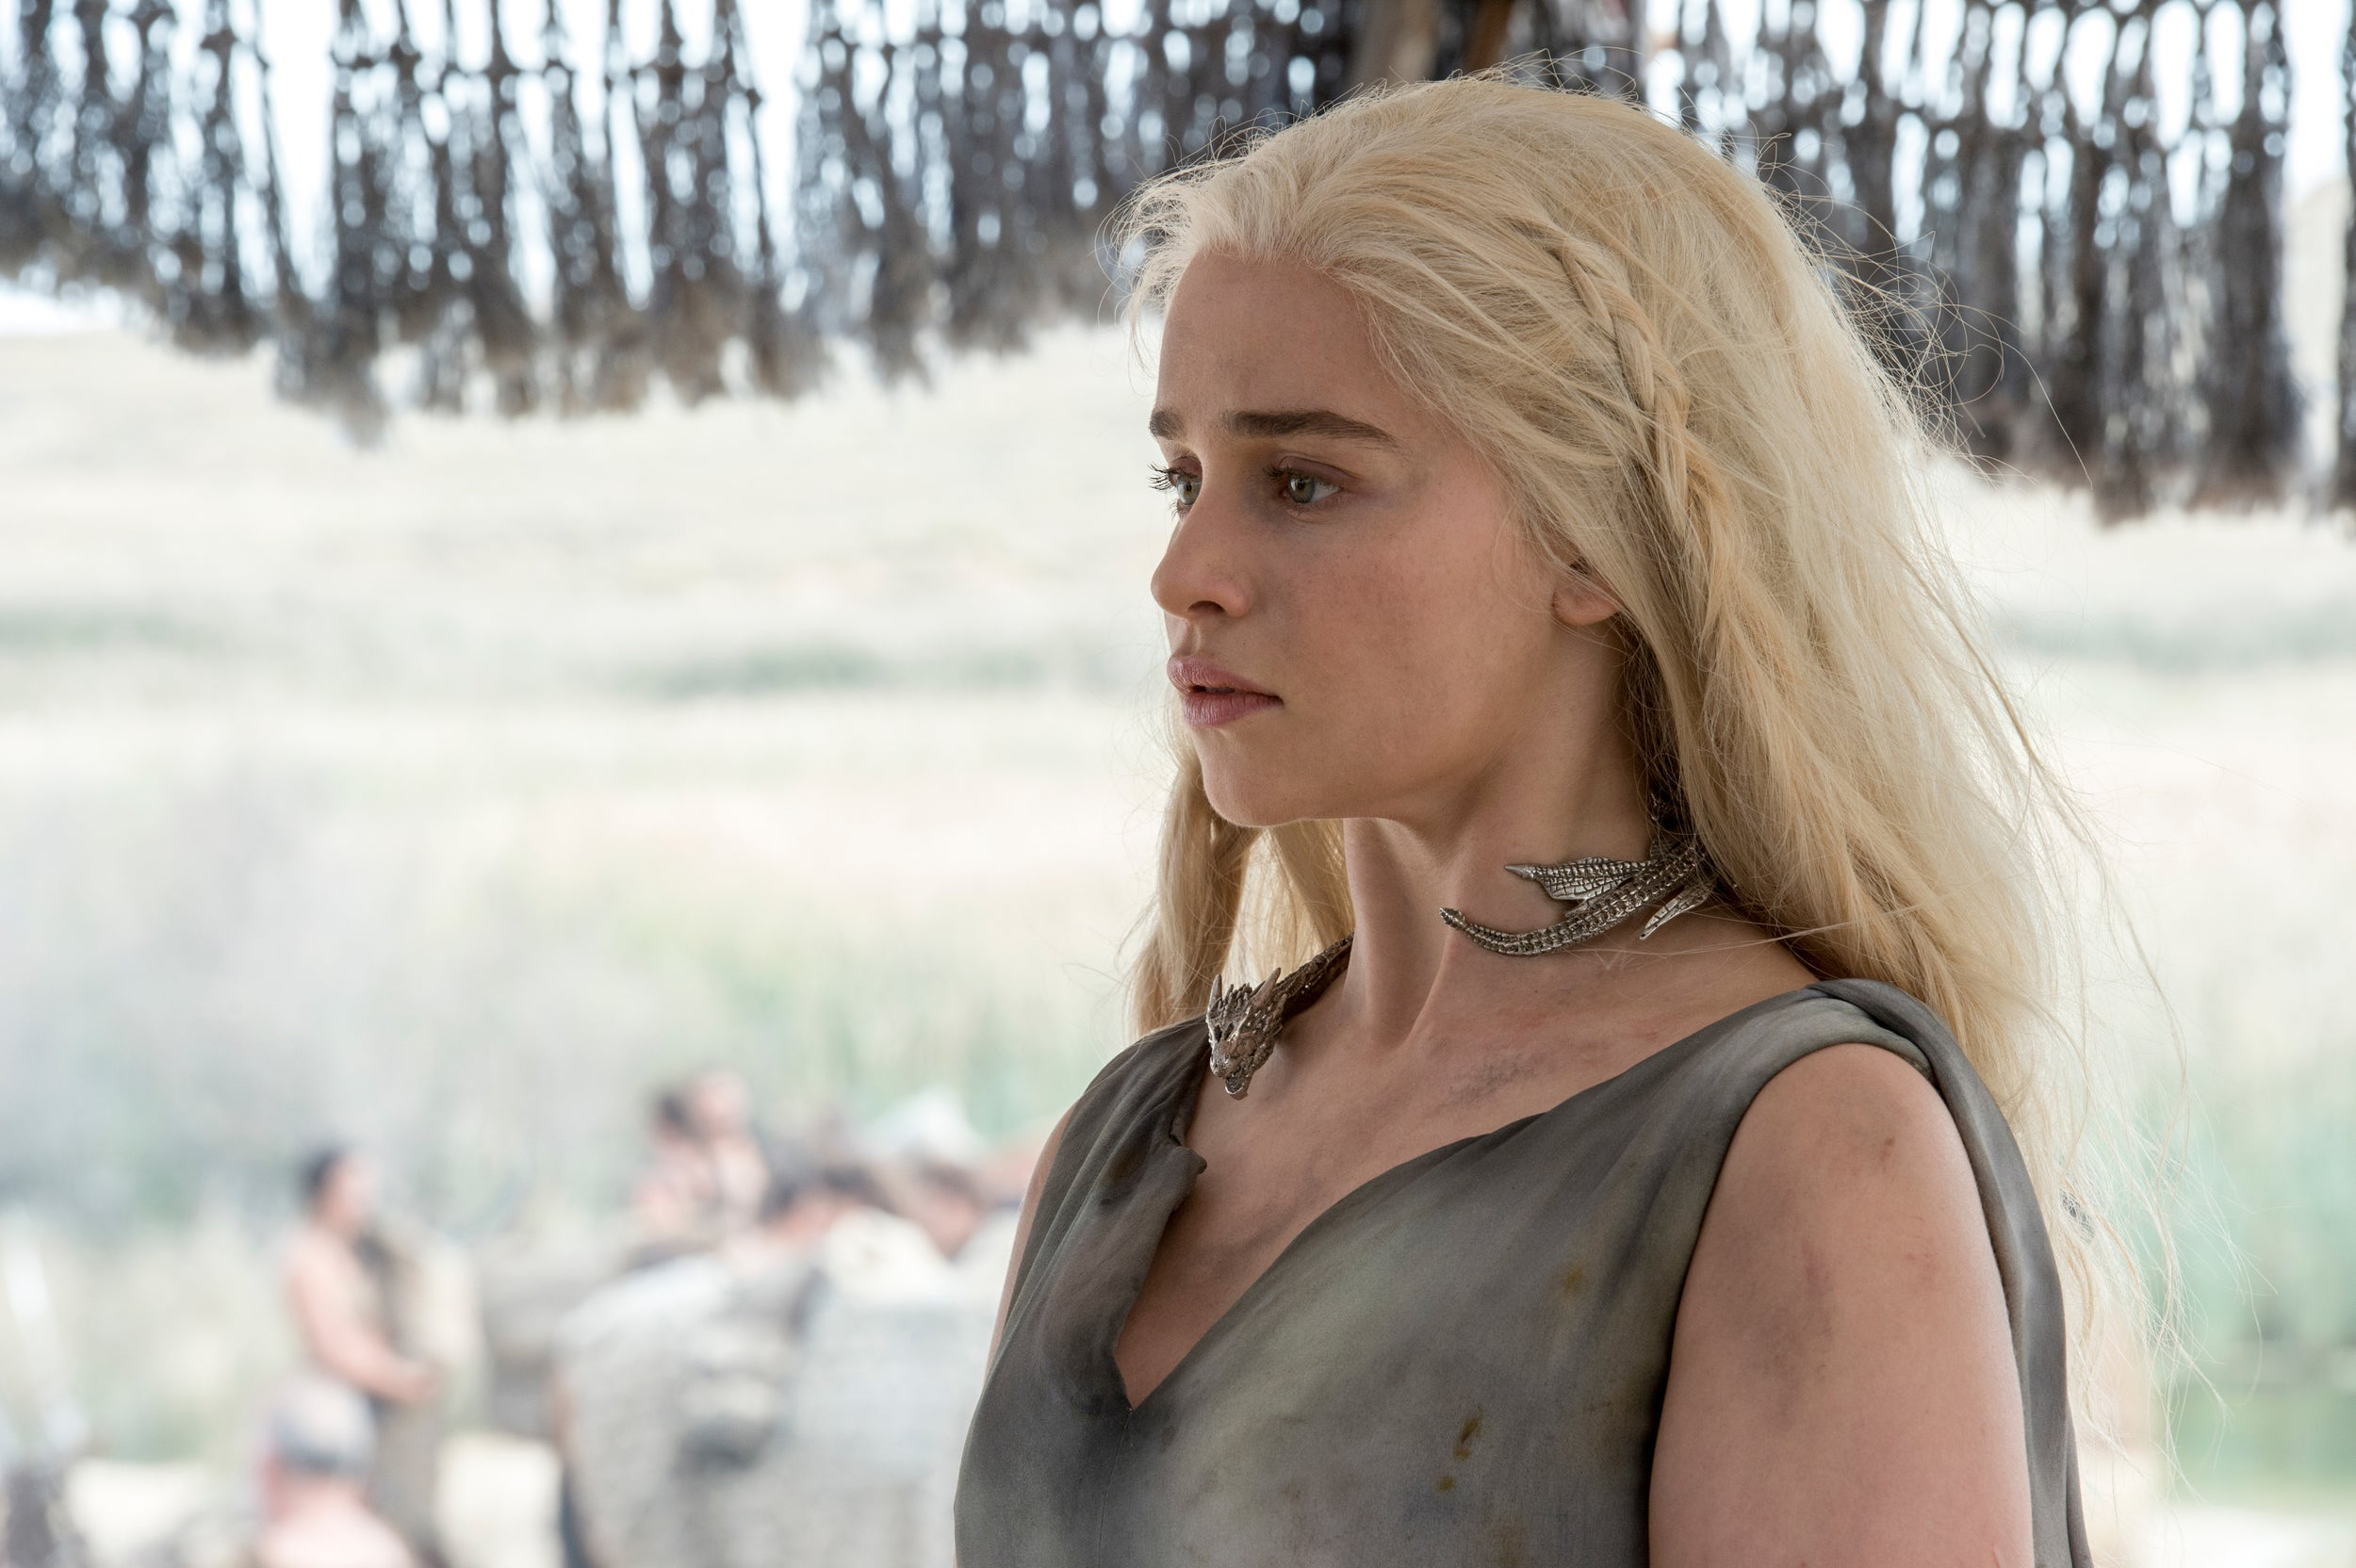 List of Game of Thrones characters - Wikipedia